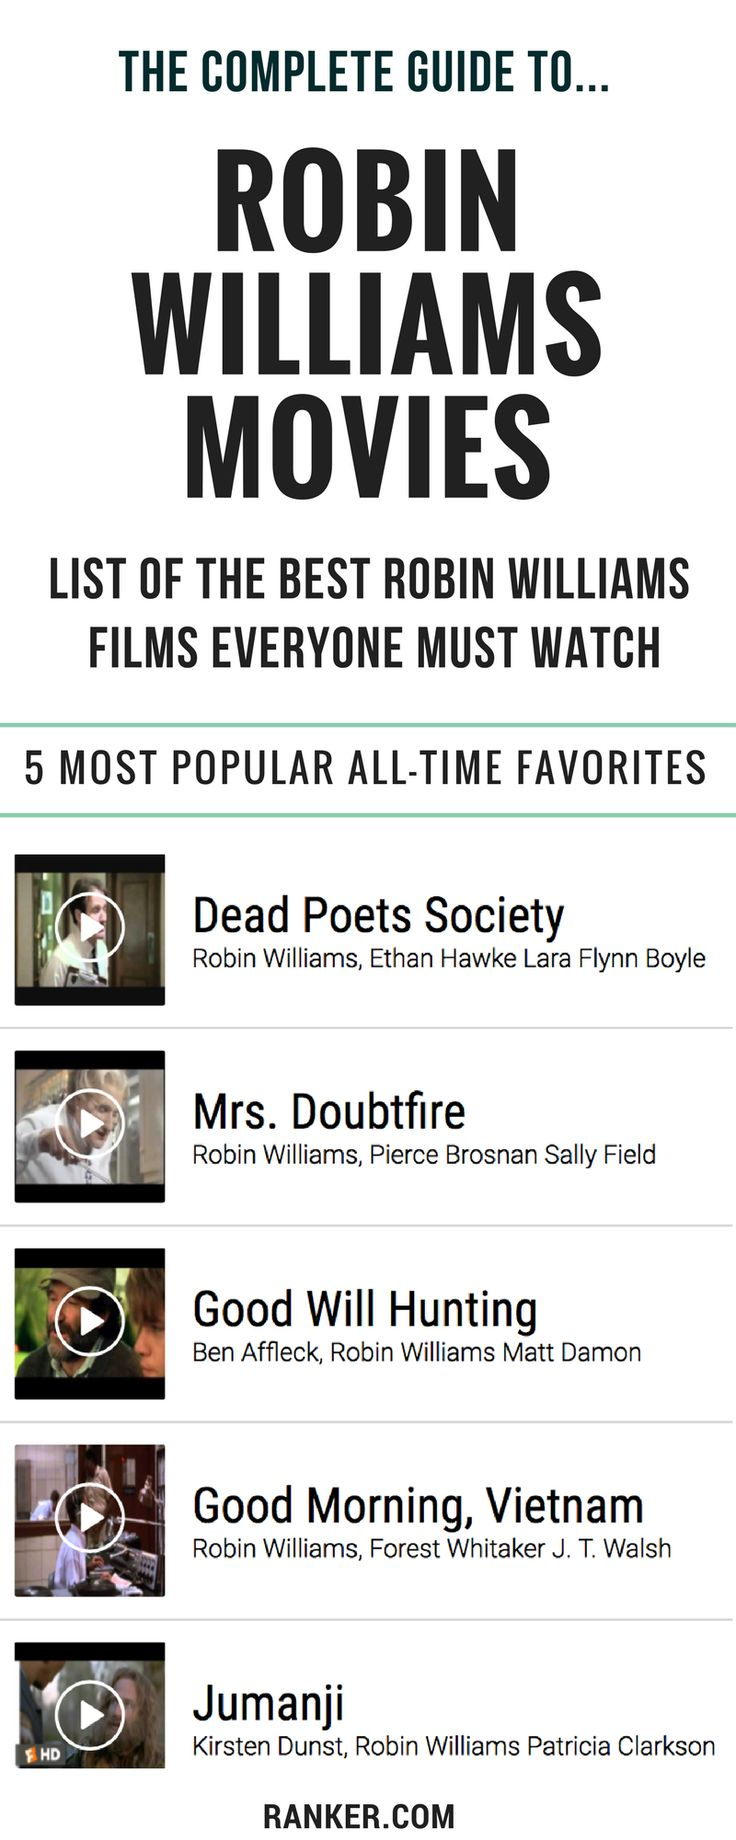 All of Robin Williams' Movies Ranked!